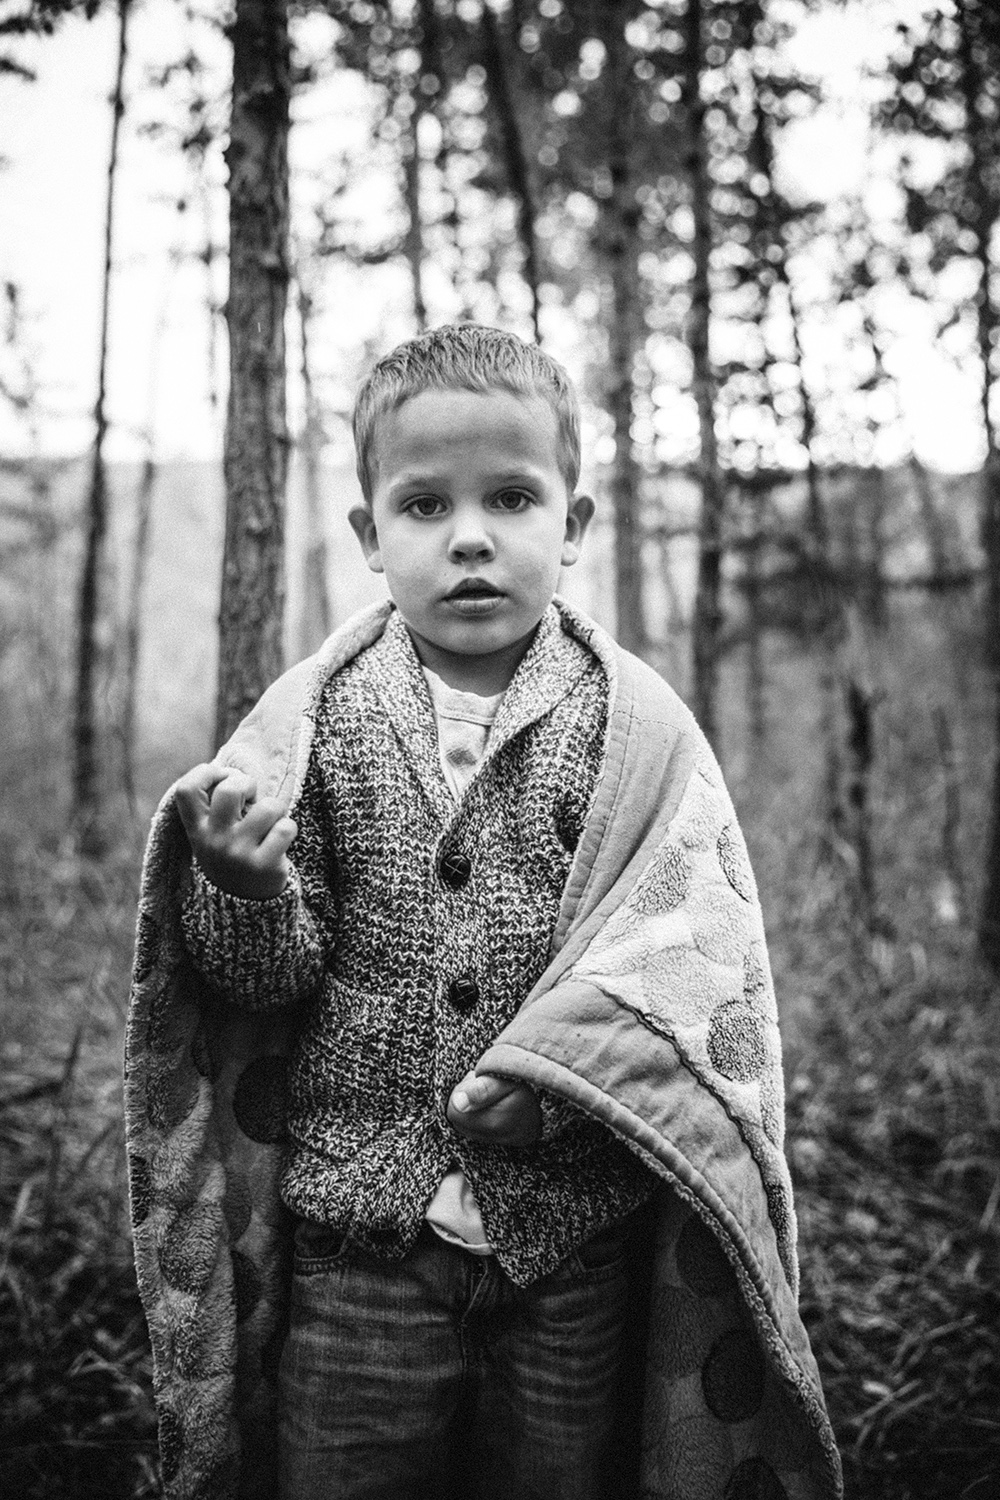 Editorial image of a boy wrapped in his favourite blanket